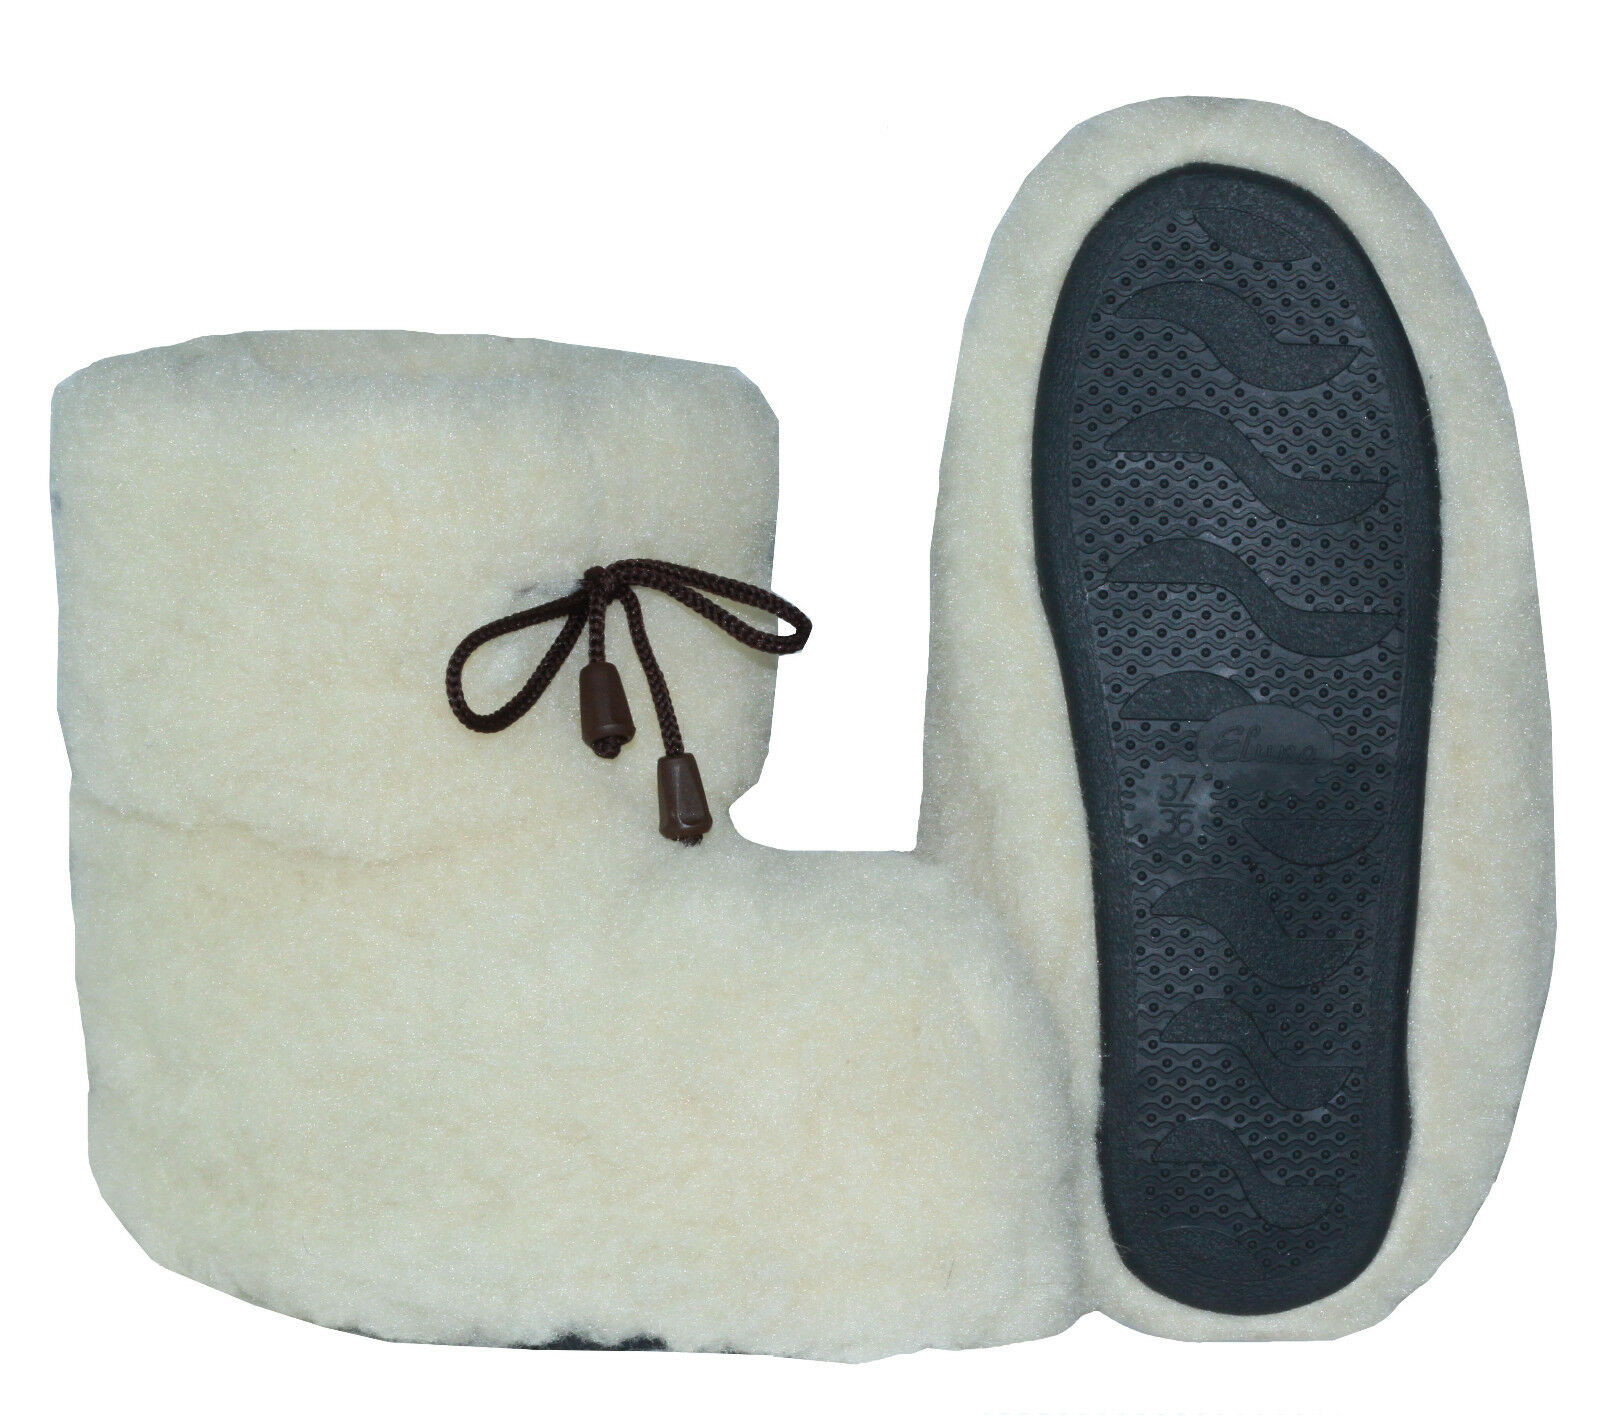 New 100% Genuine Natural Sheep Wool Slippers Home scarpe Soft avvioies US SELLER